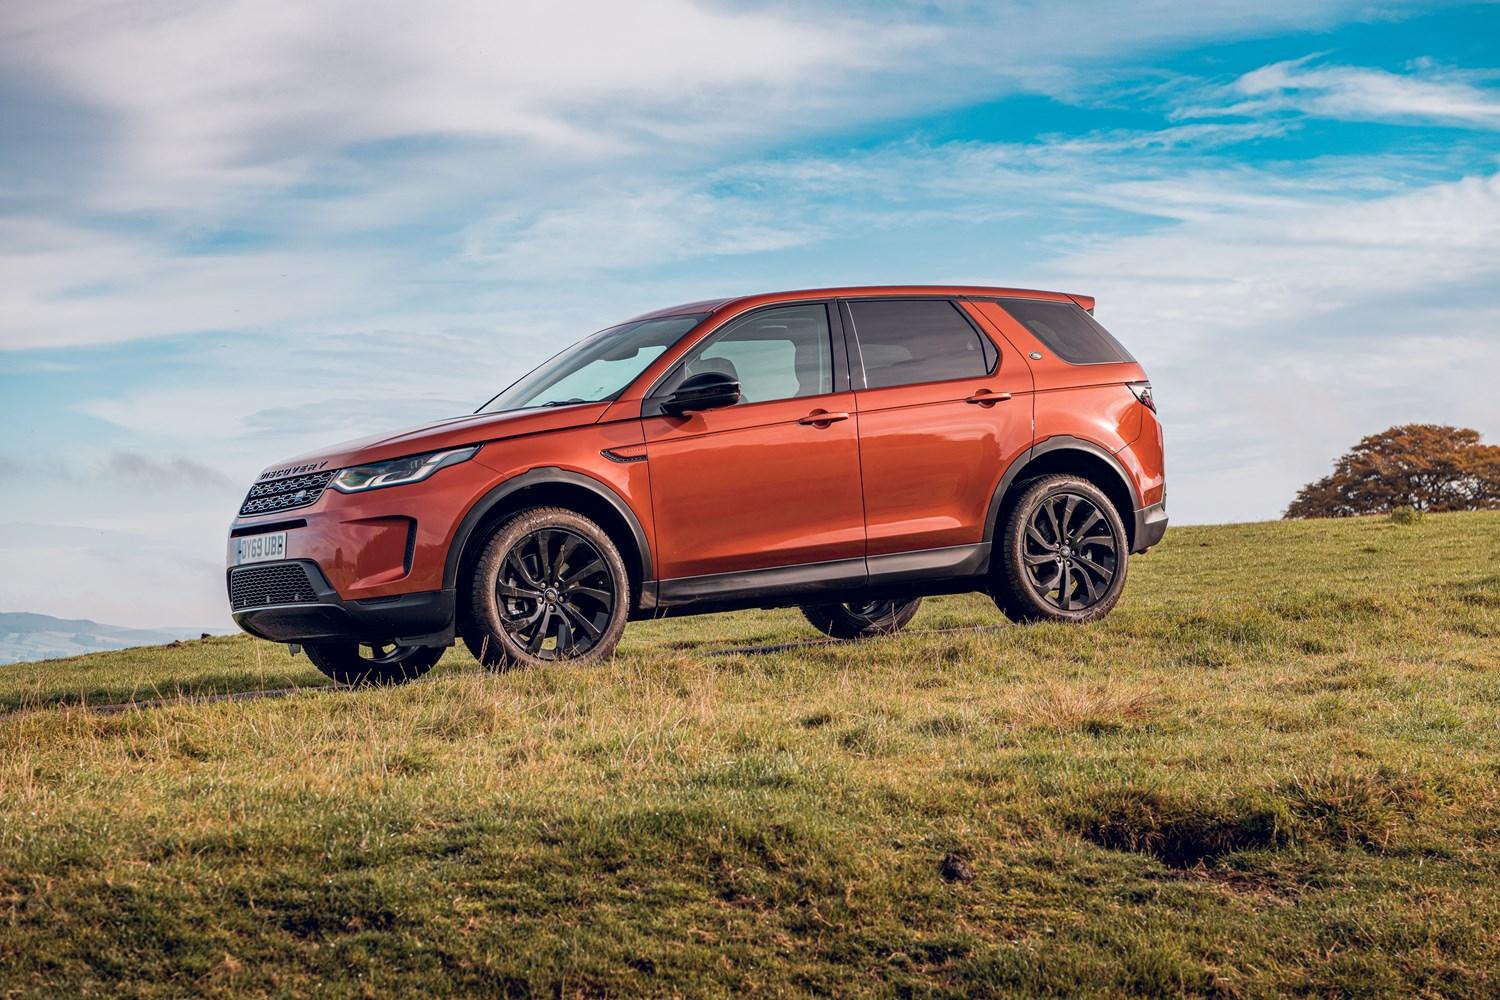 orange land rover discovery sport on grass with blue sky